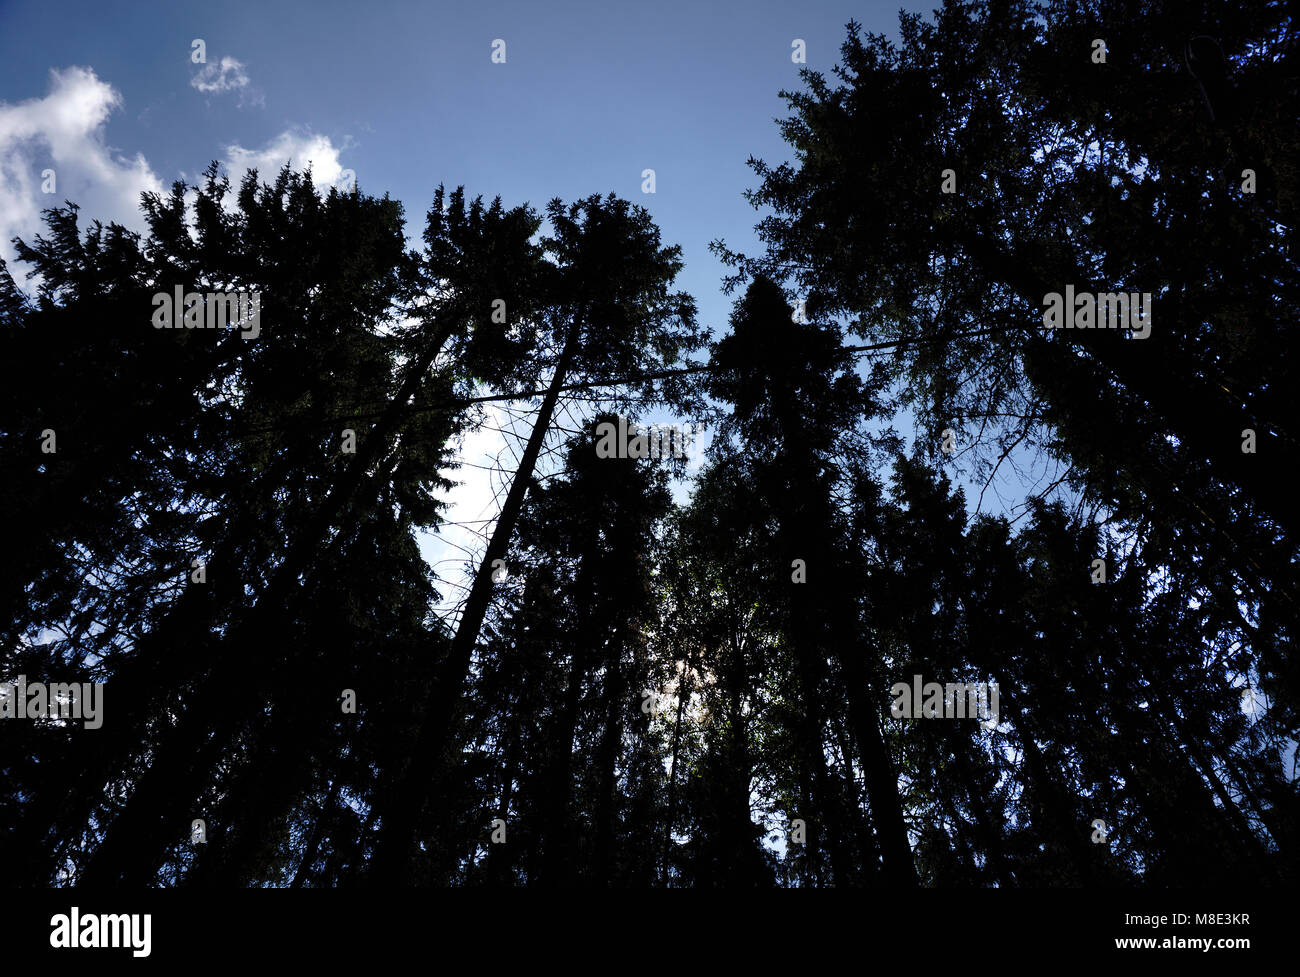 Low angle view of tall trees - Stock Image